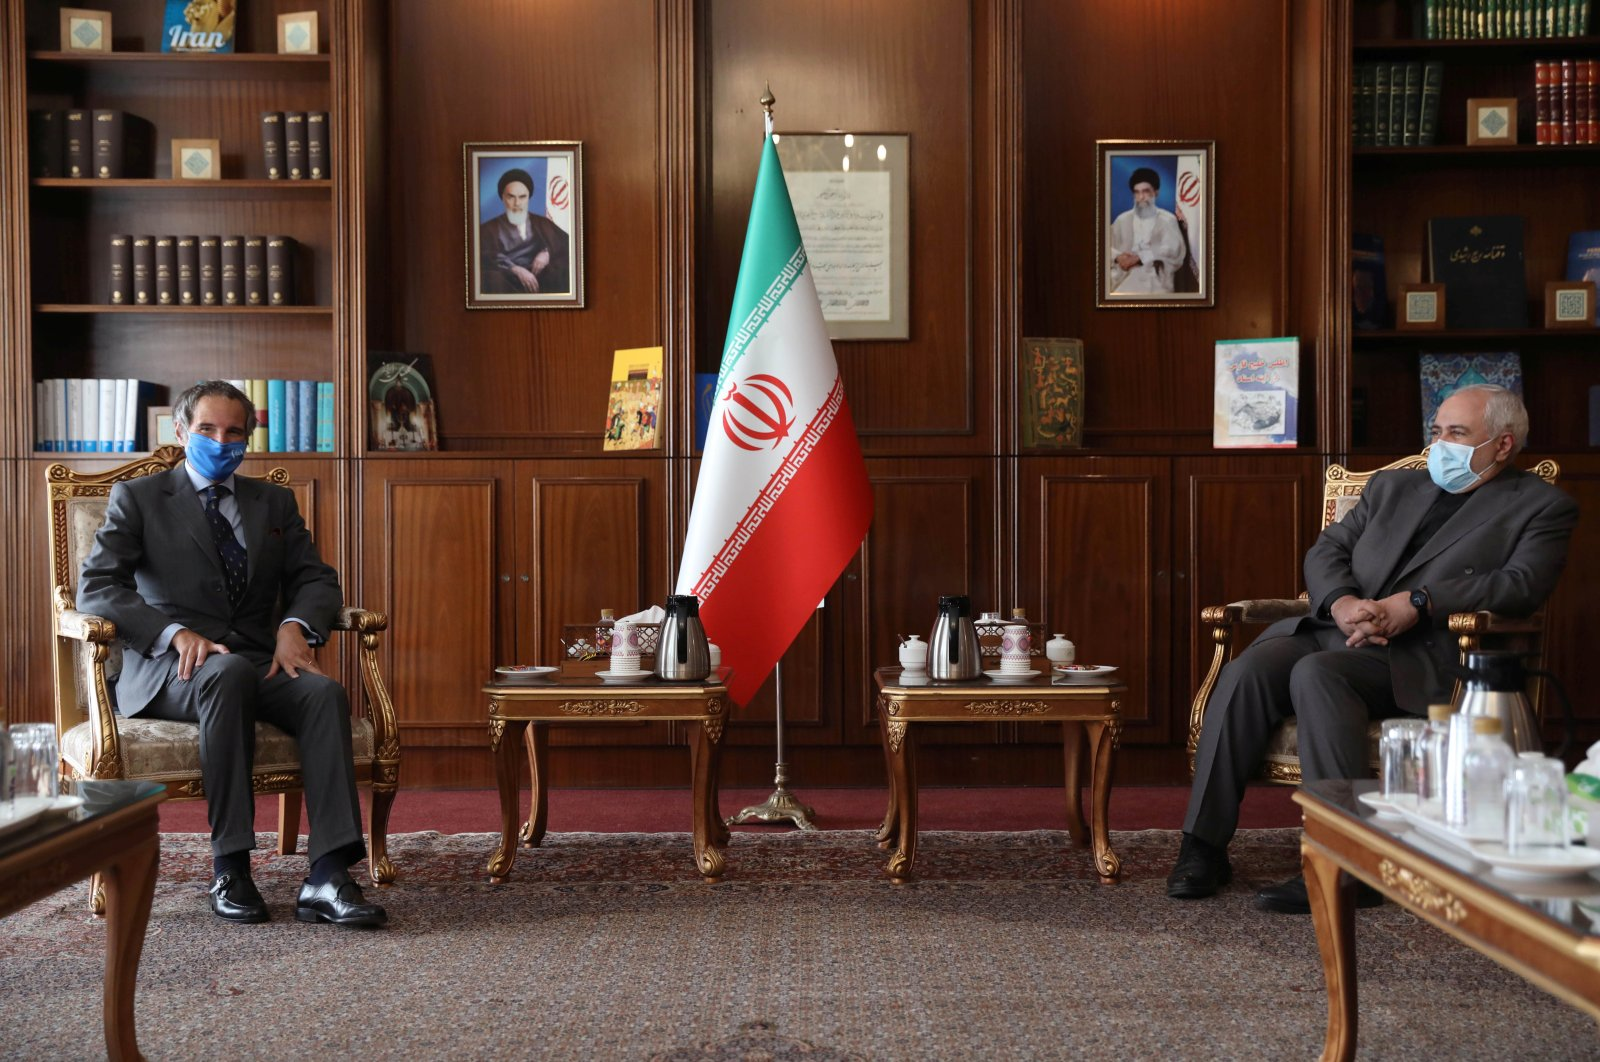 Iran's Foreign Minister Mohammad Javad Zarif meets with International Atomic Energy Agency (IAEA) Director-General Rafael Grossi in Tehran, Iran, Aug. 25, 2020. (West Asia News Agency Photo via Reuters)